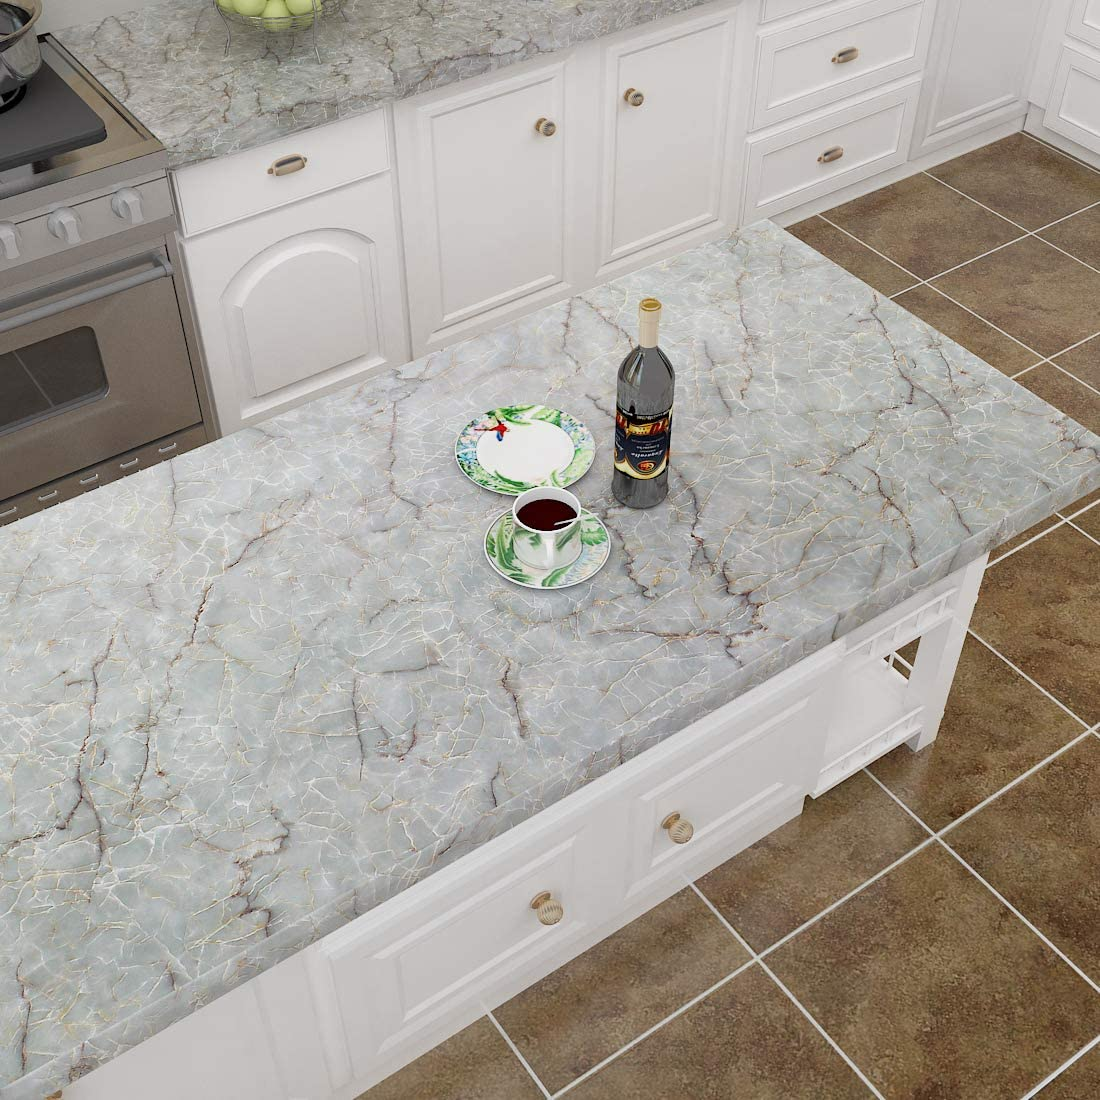 Buy Lacheery 160 X 24 Inch Marble Cyan Blue Contact Paper Decorative Peel And Stick Wallpaper Roll Removable Wallpaper Waterproof Marble Countertop Contact Paper For Kitchen Island Cabinets Backslash Desk Online In